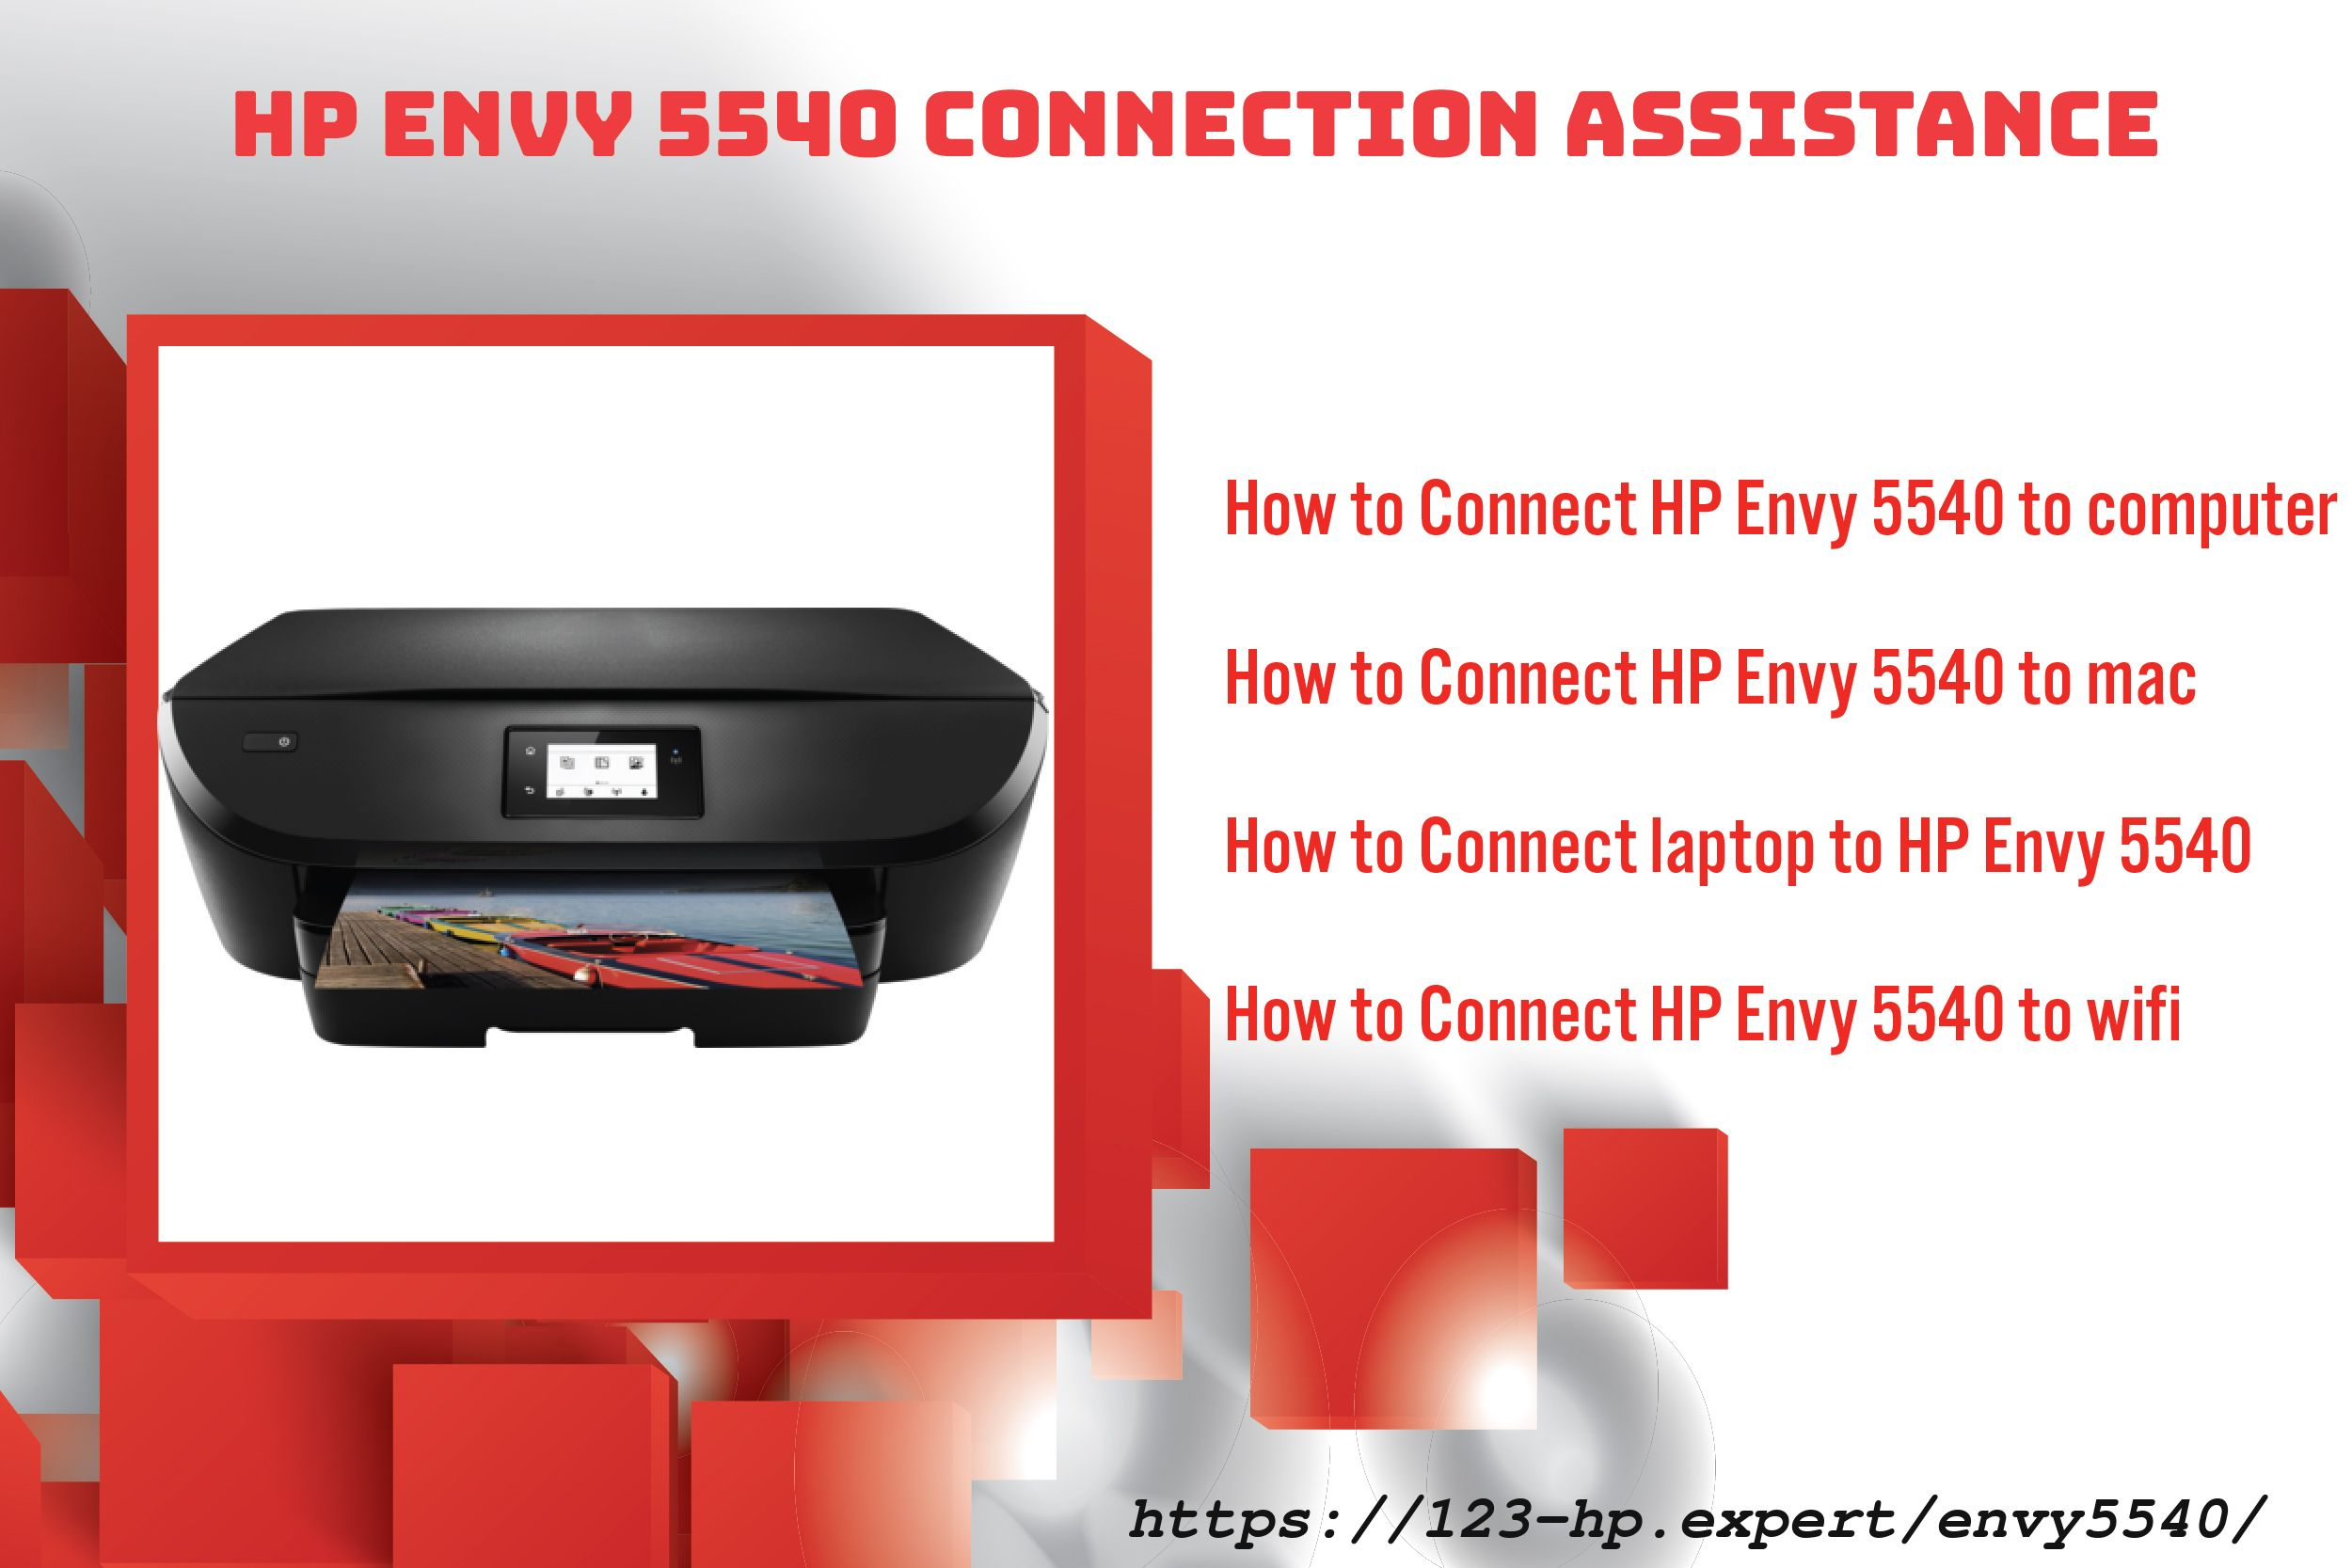 HP Envy 5540 Printer Connection like, How to Connect to